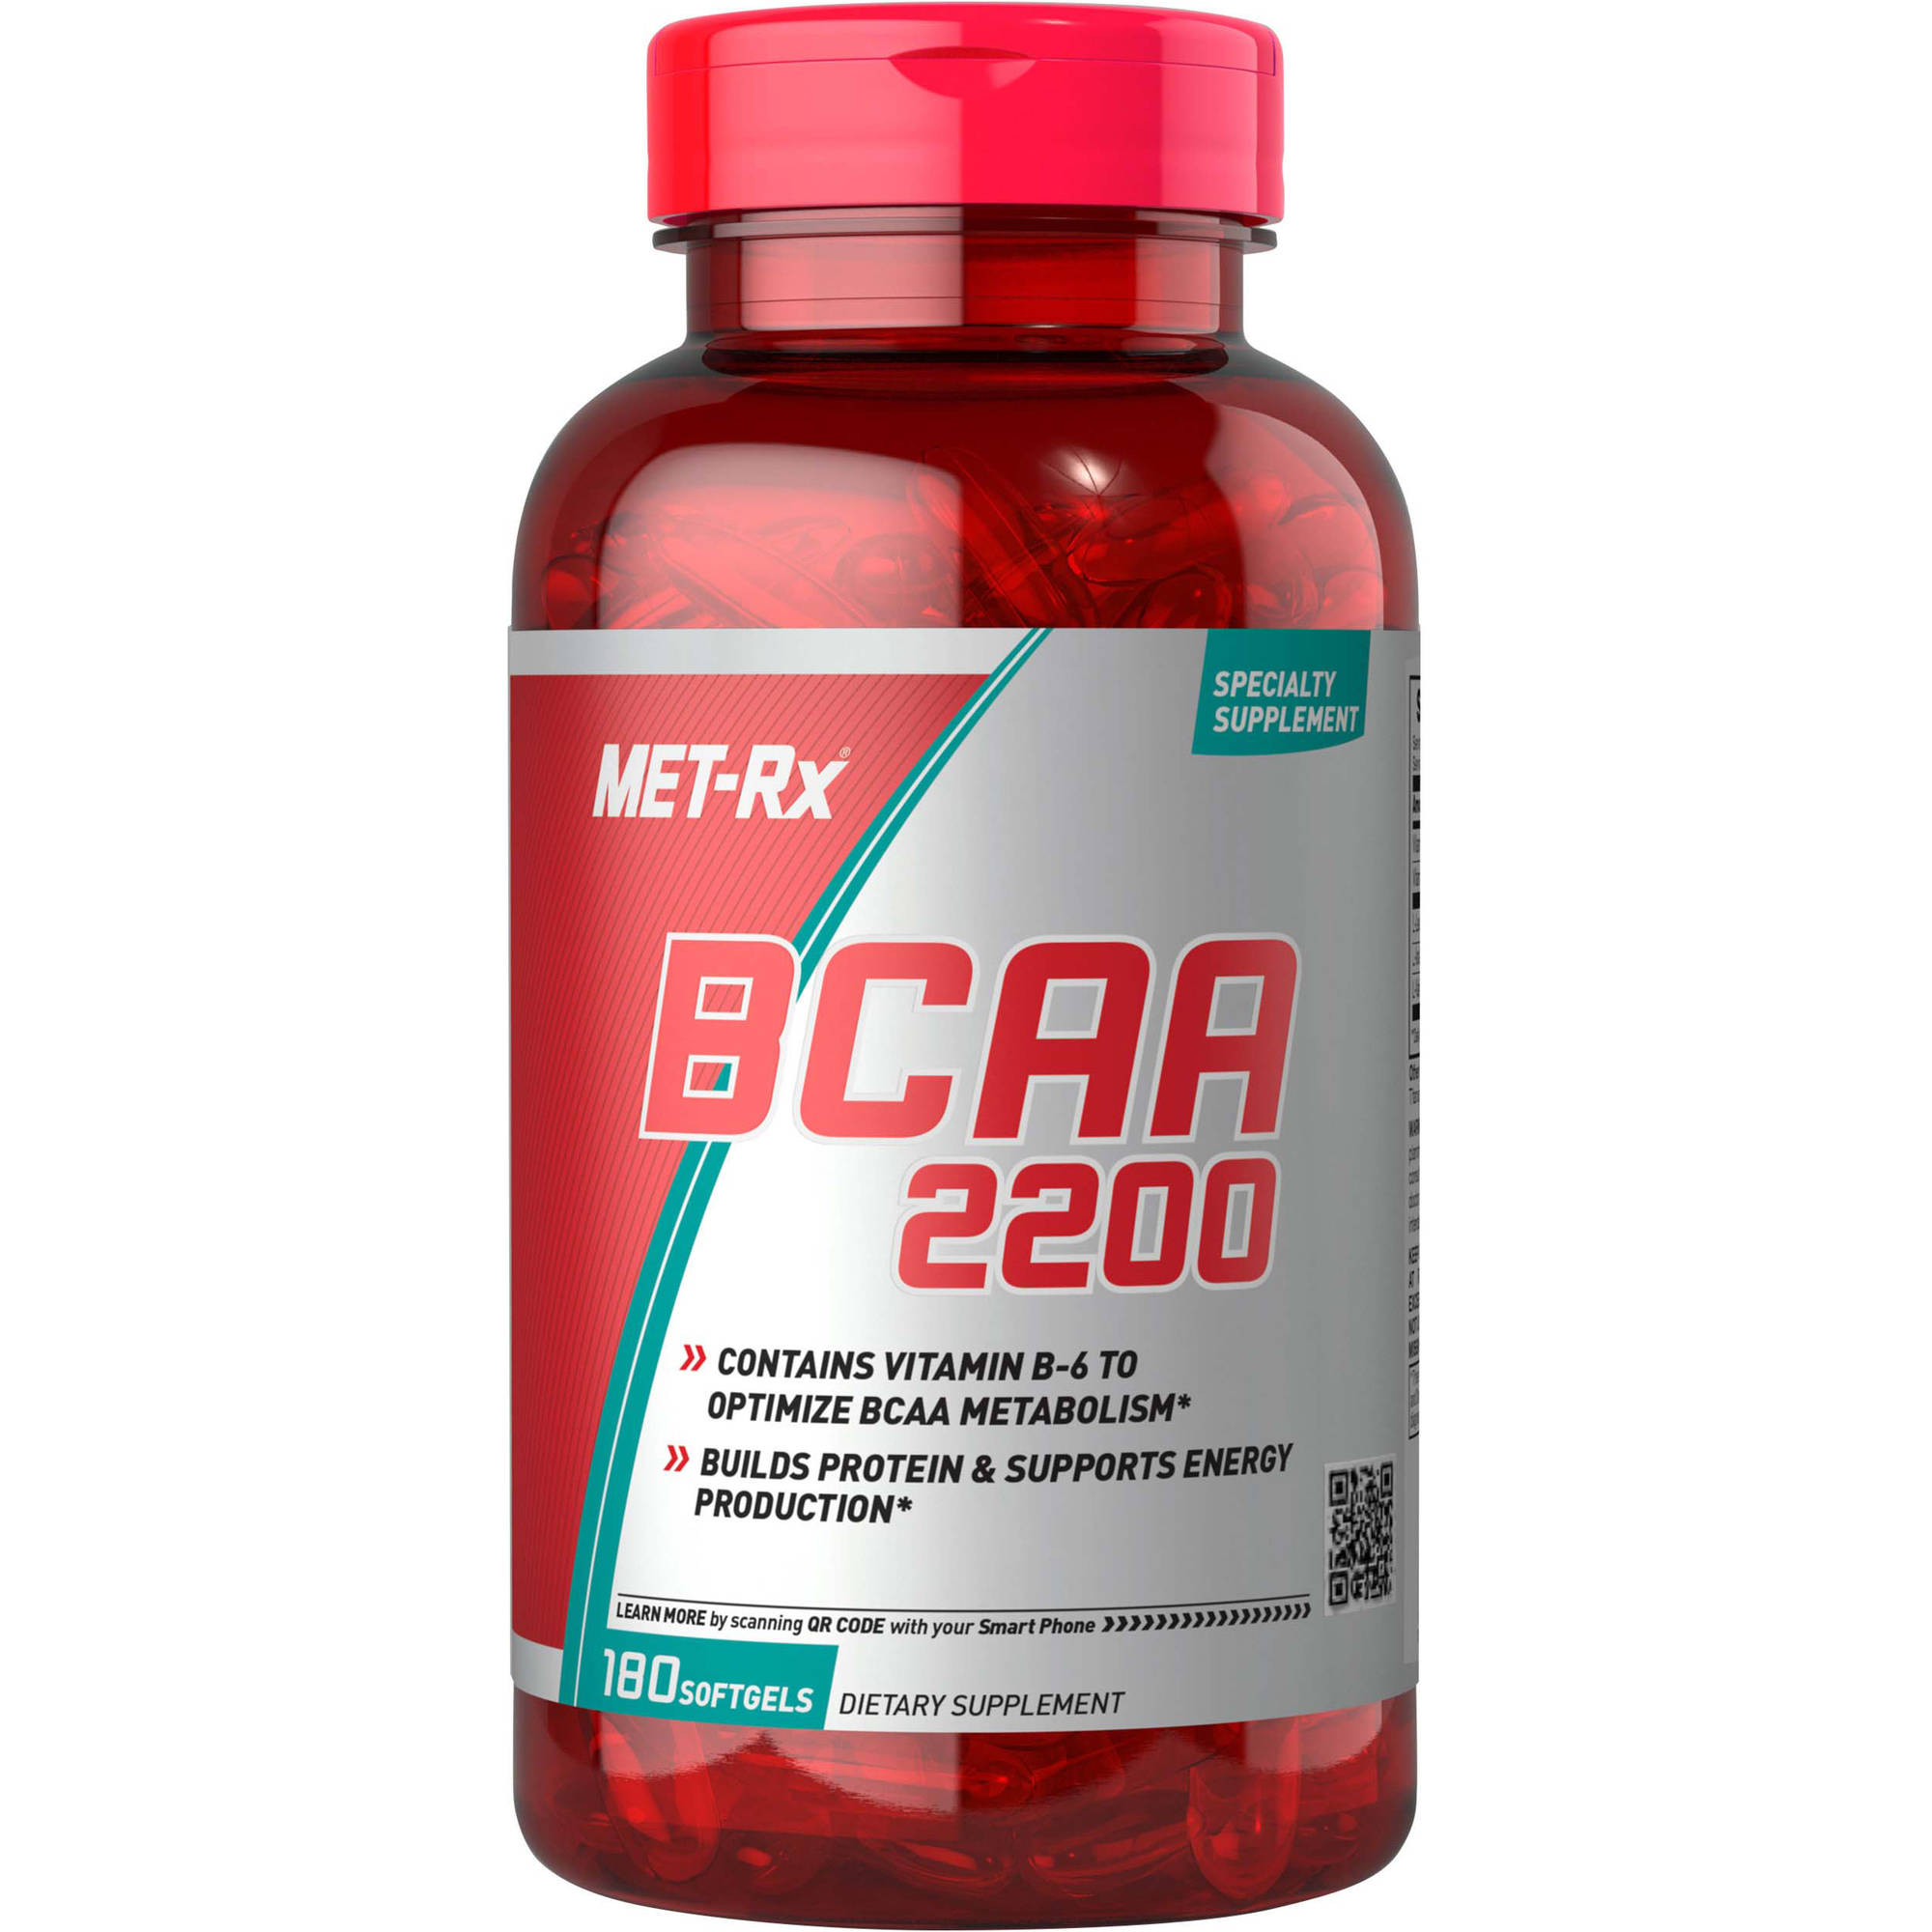 MET-Rx BCAA 2200 Dietary Supplement, 180 count